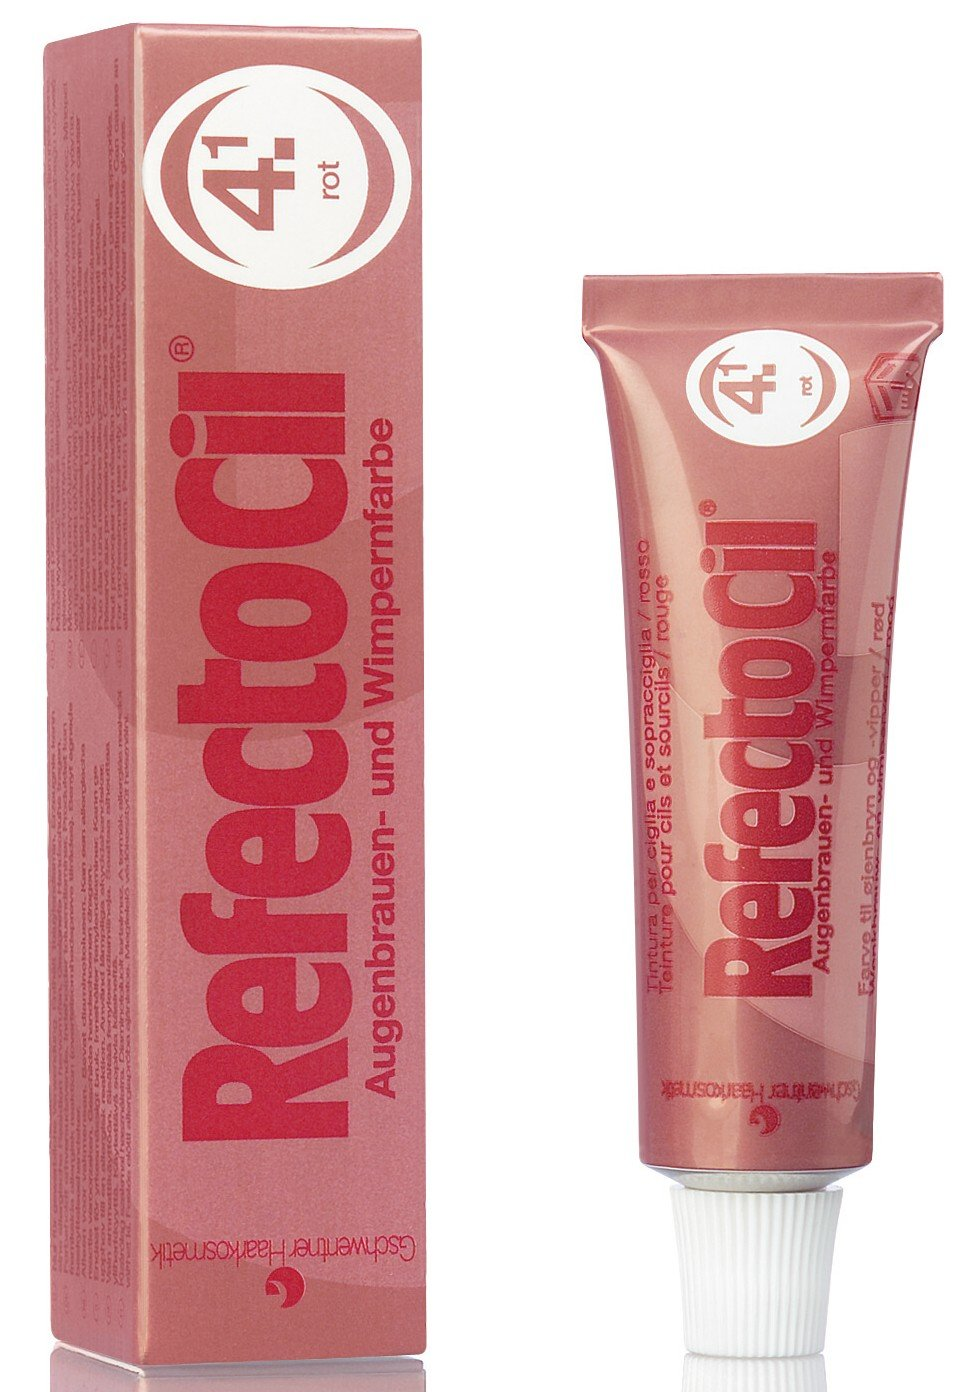 RefectoCil Henna 4.1 Red Tinte Blanqueamiento Cejas - 15 ml 0501008